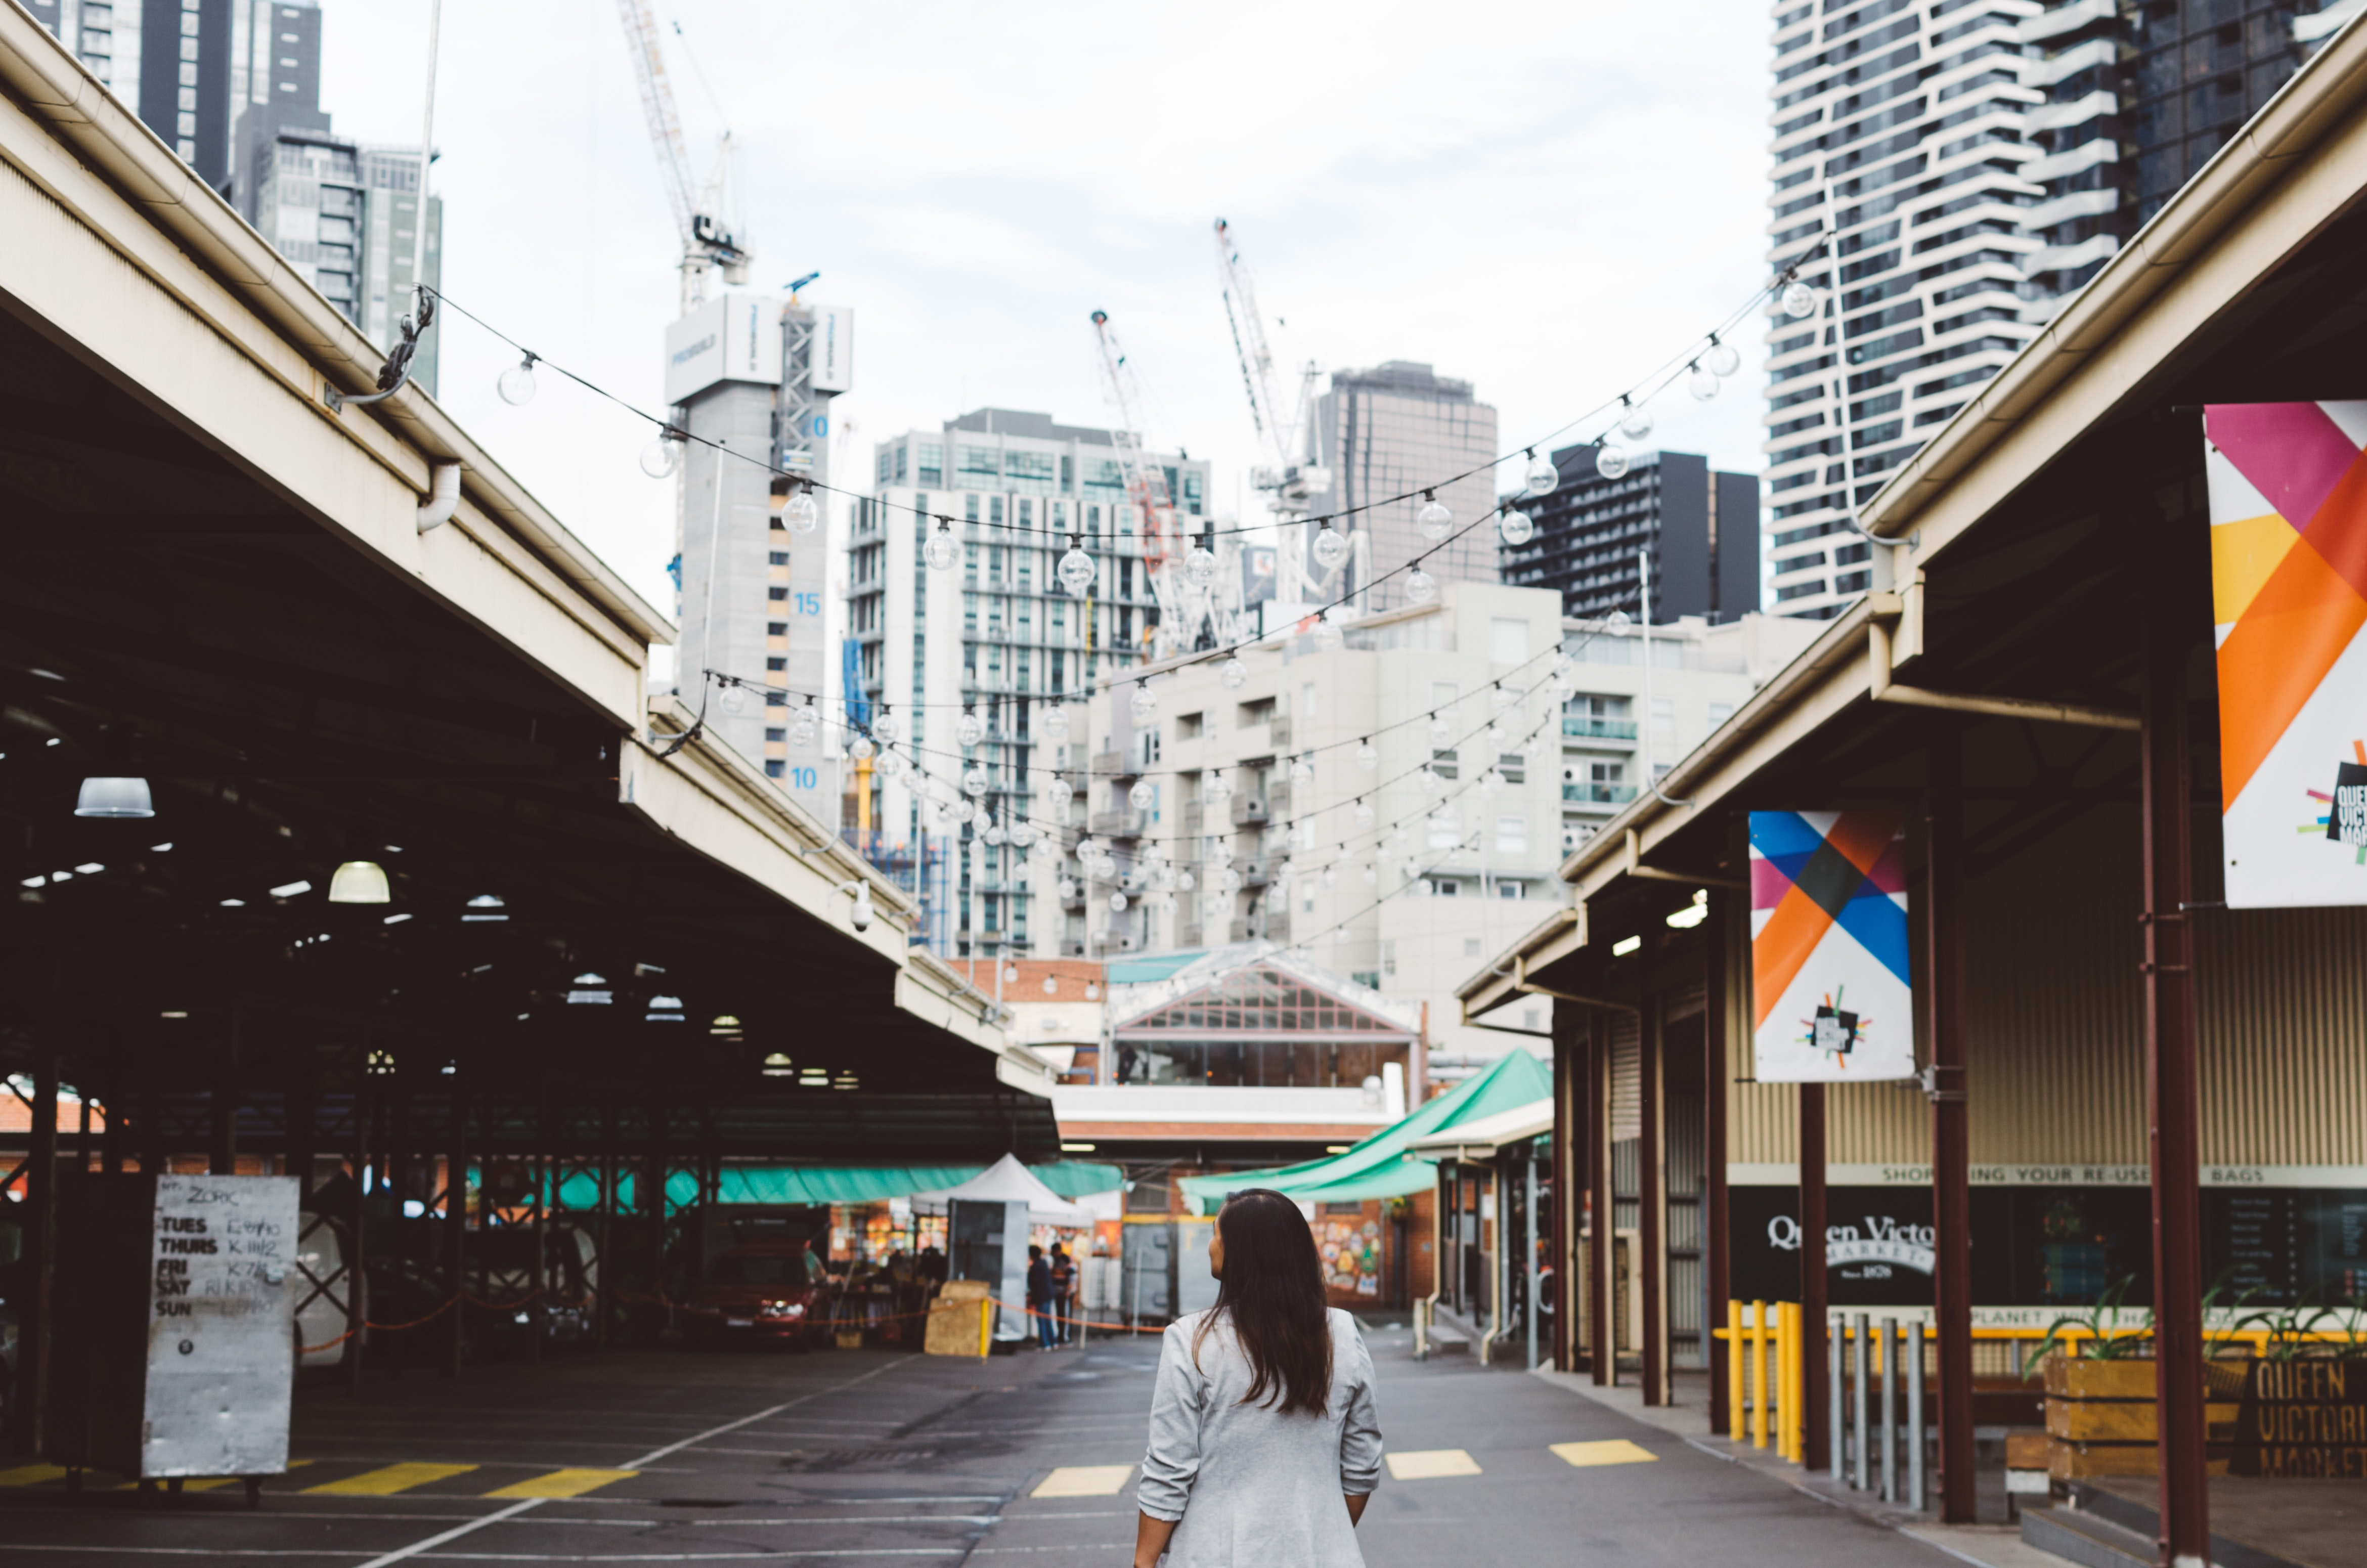 A woman walking on the street at the Queen Victoria Market in Melbourne, Australia